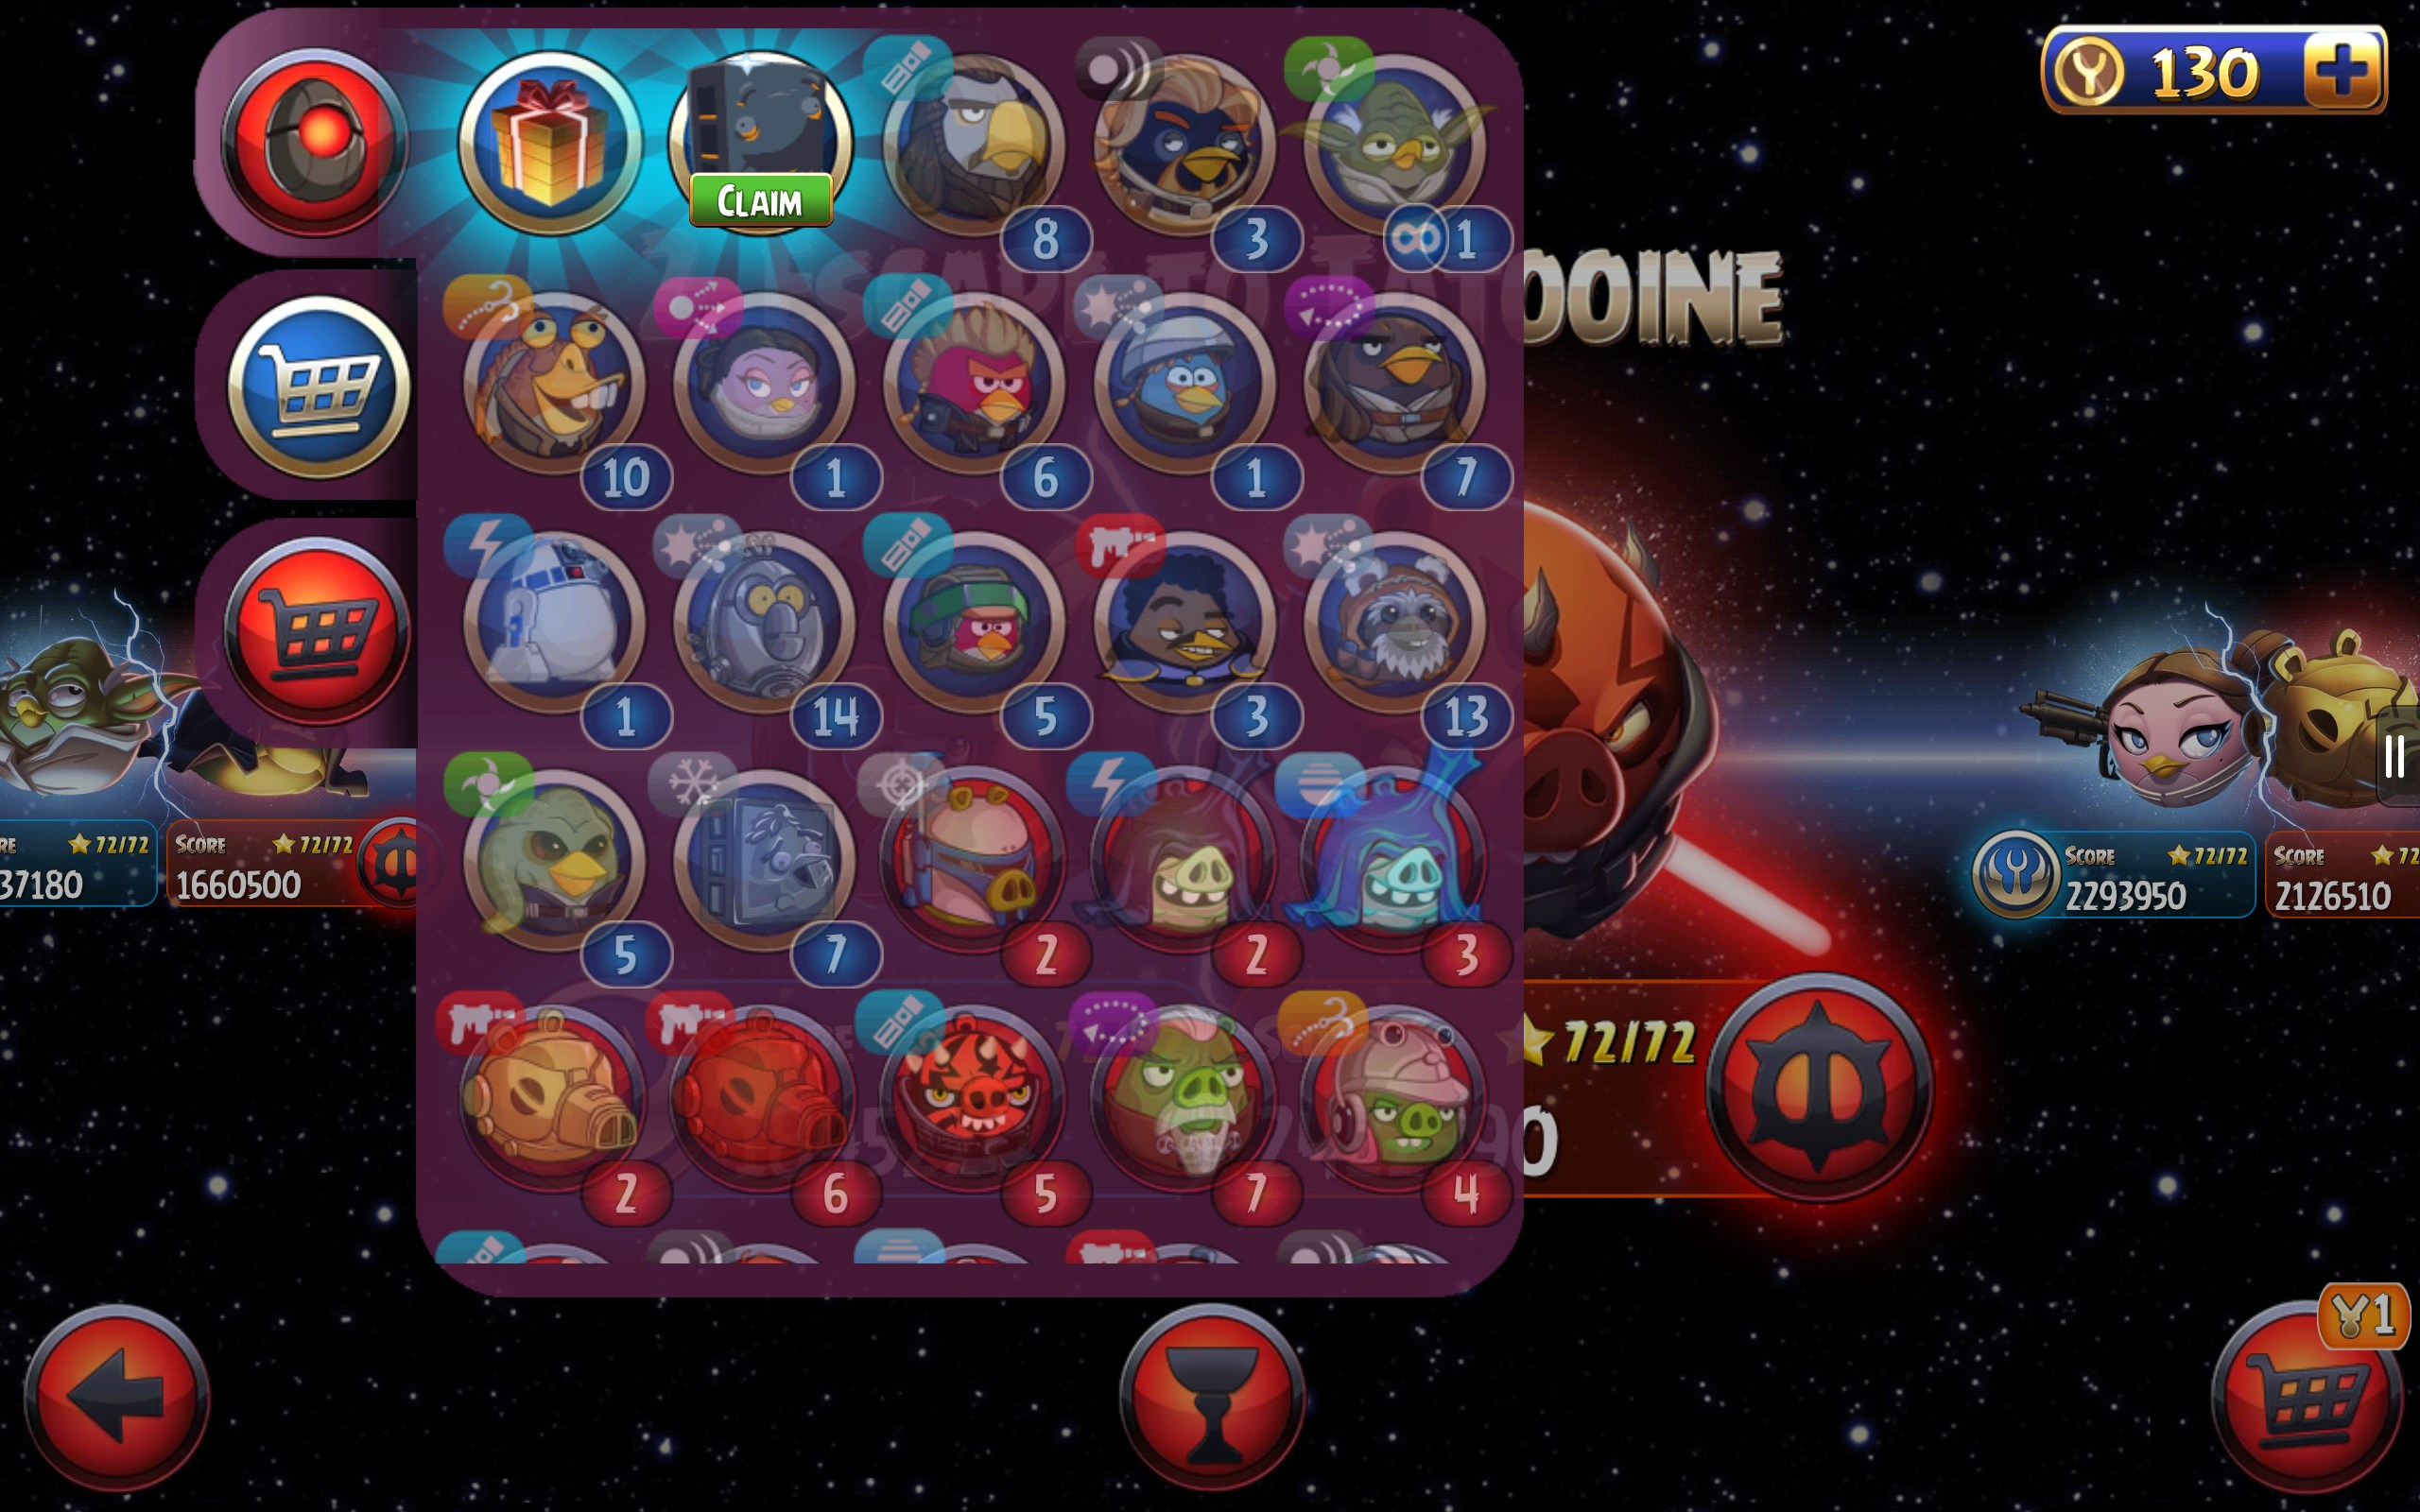 Star wars ii games for android free download angry birds star